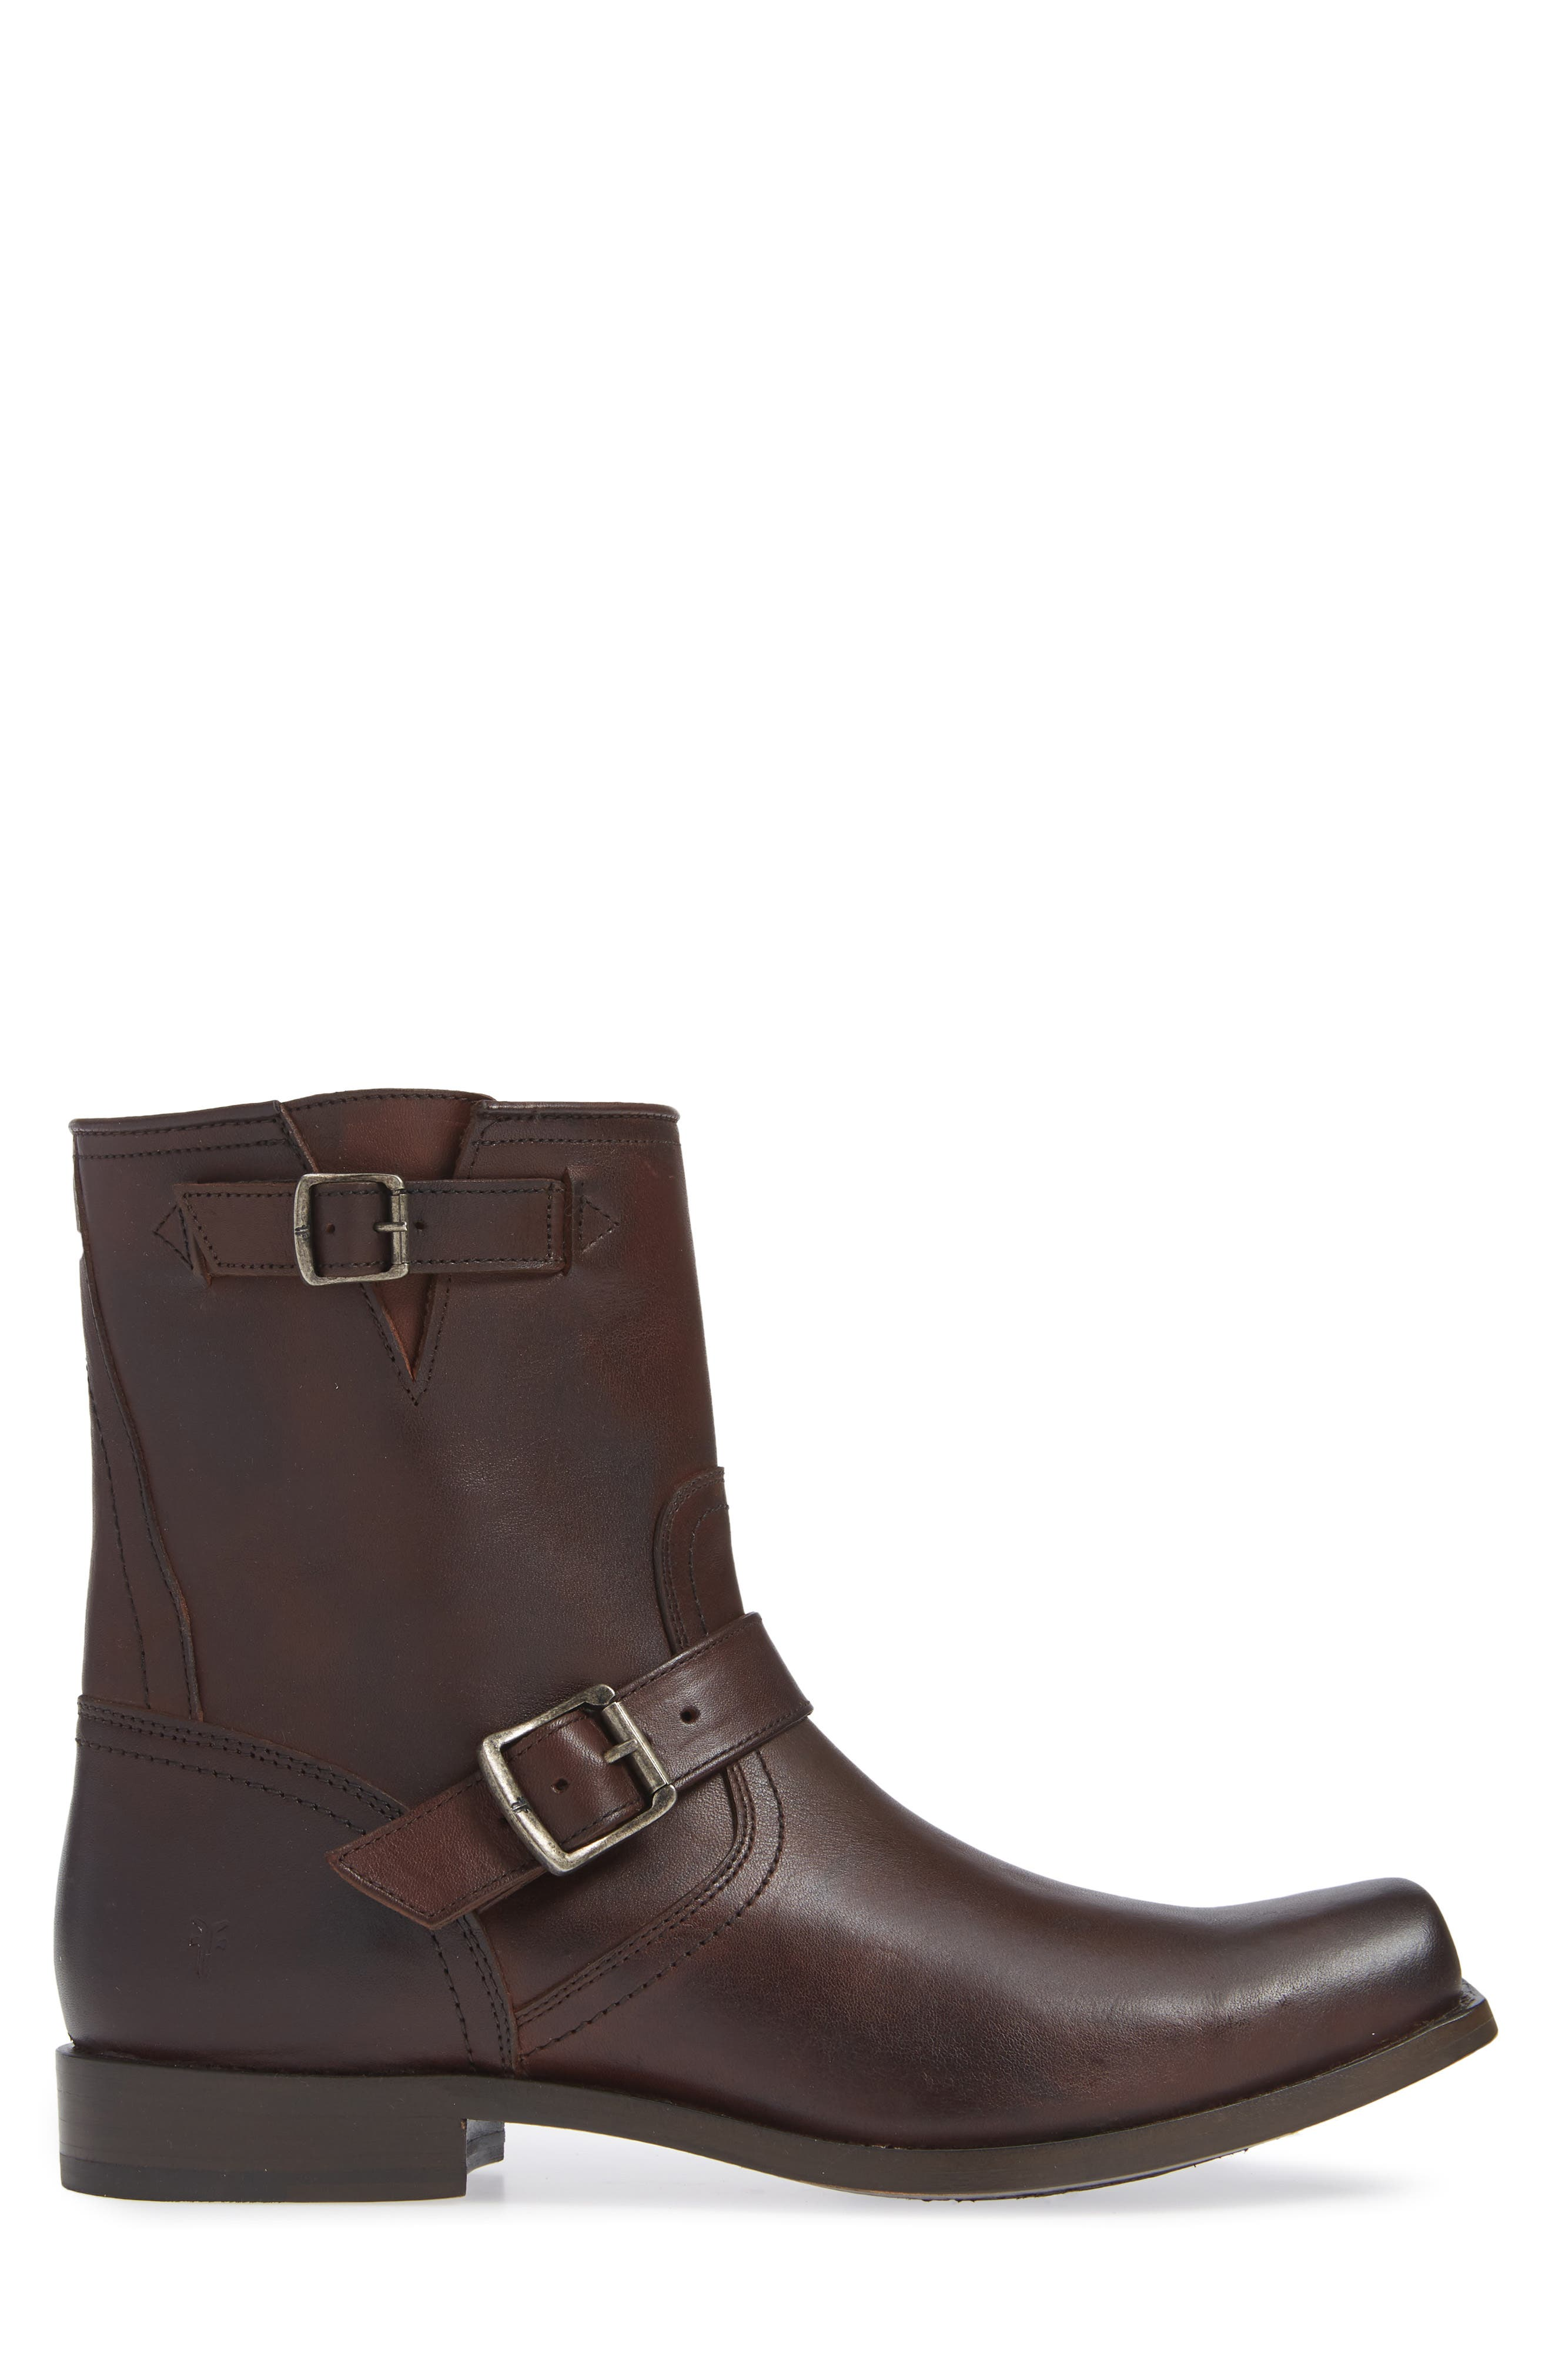 Smith Engineer Boot,                             Alternate thumbnail 3, color,                             BROWN